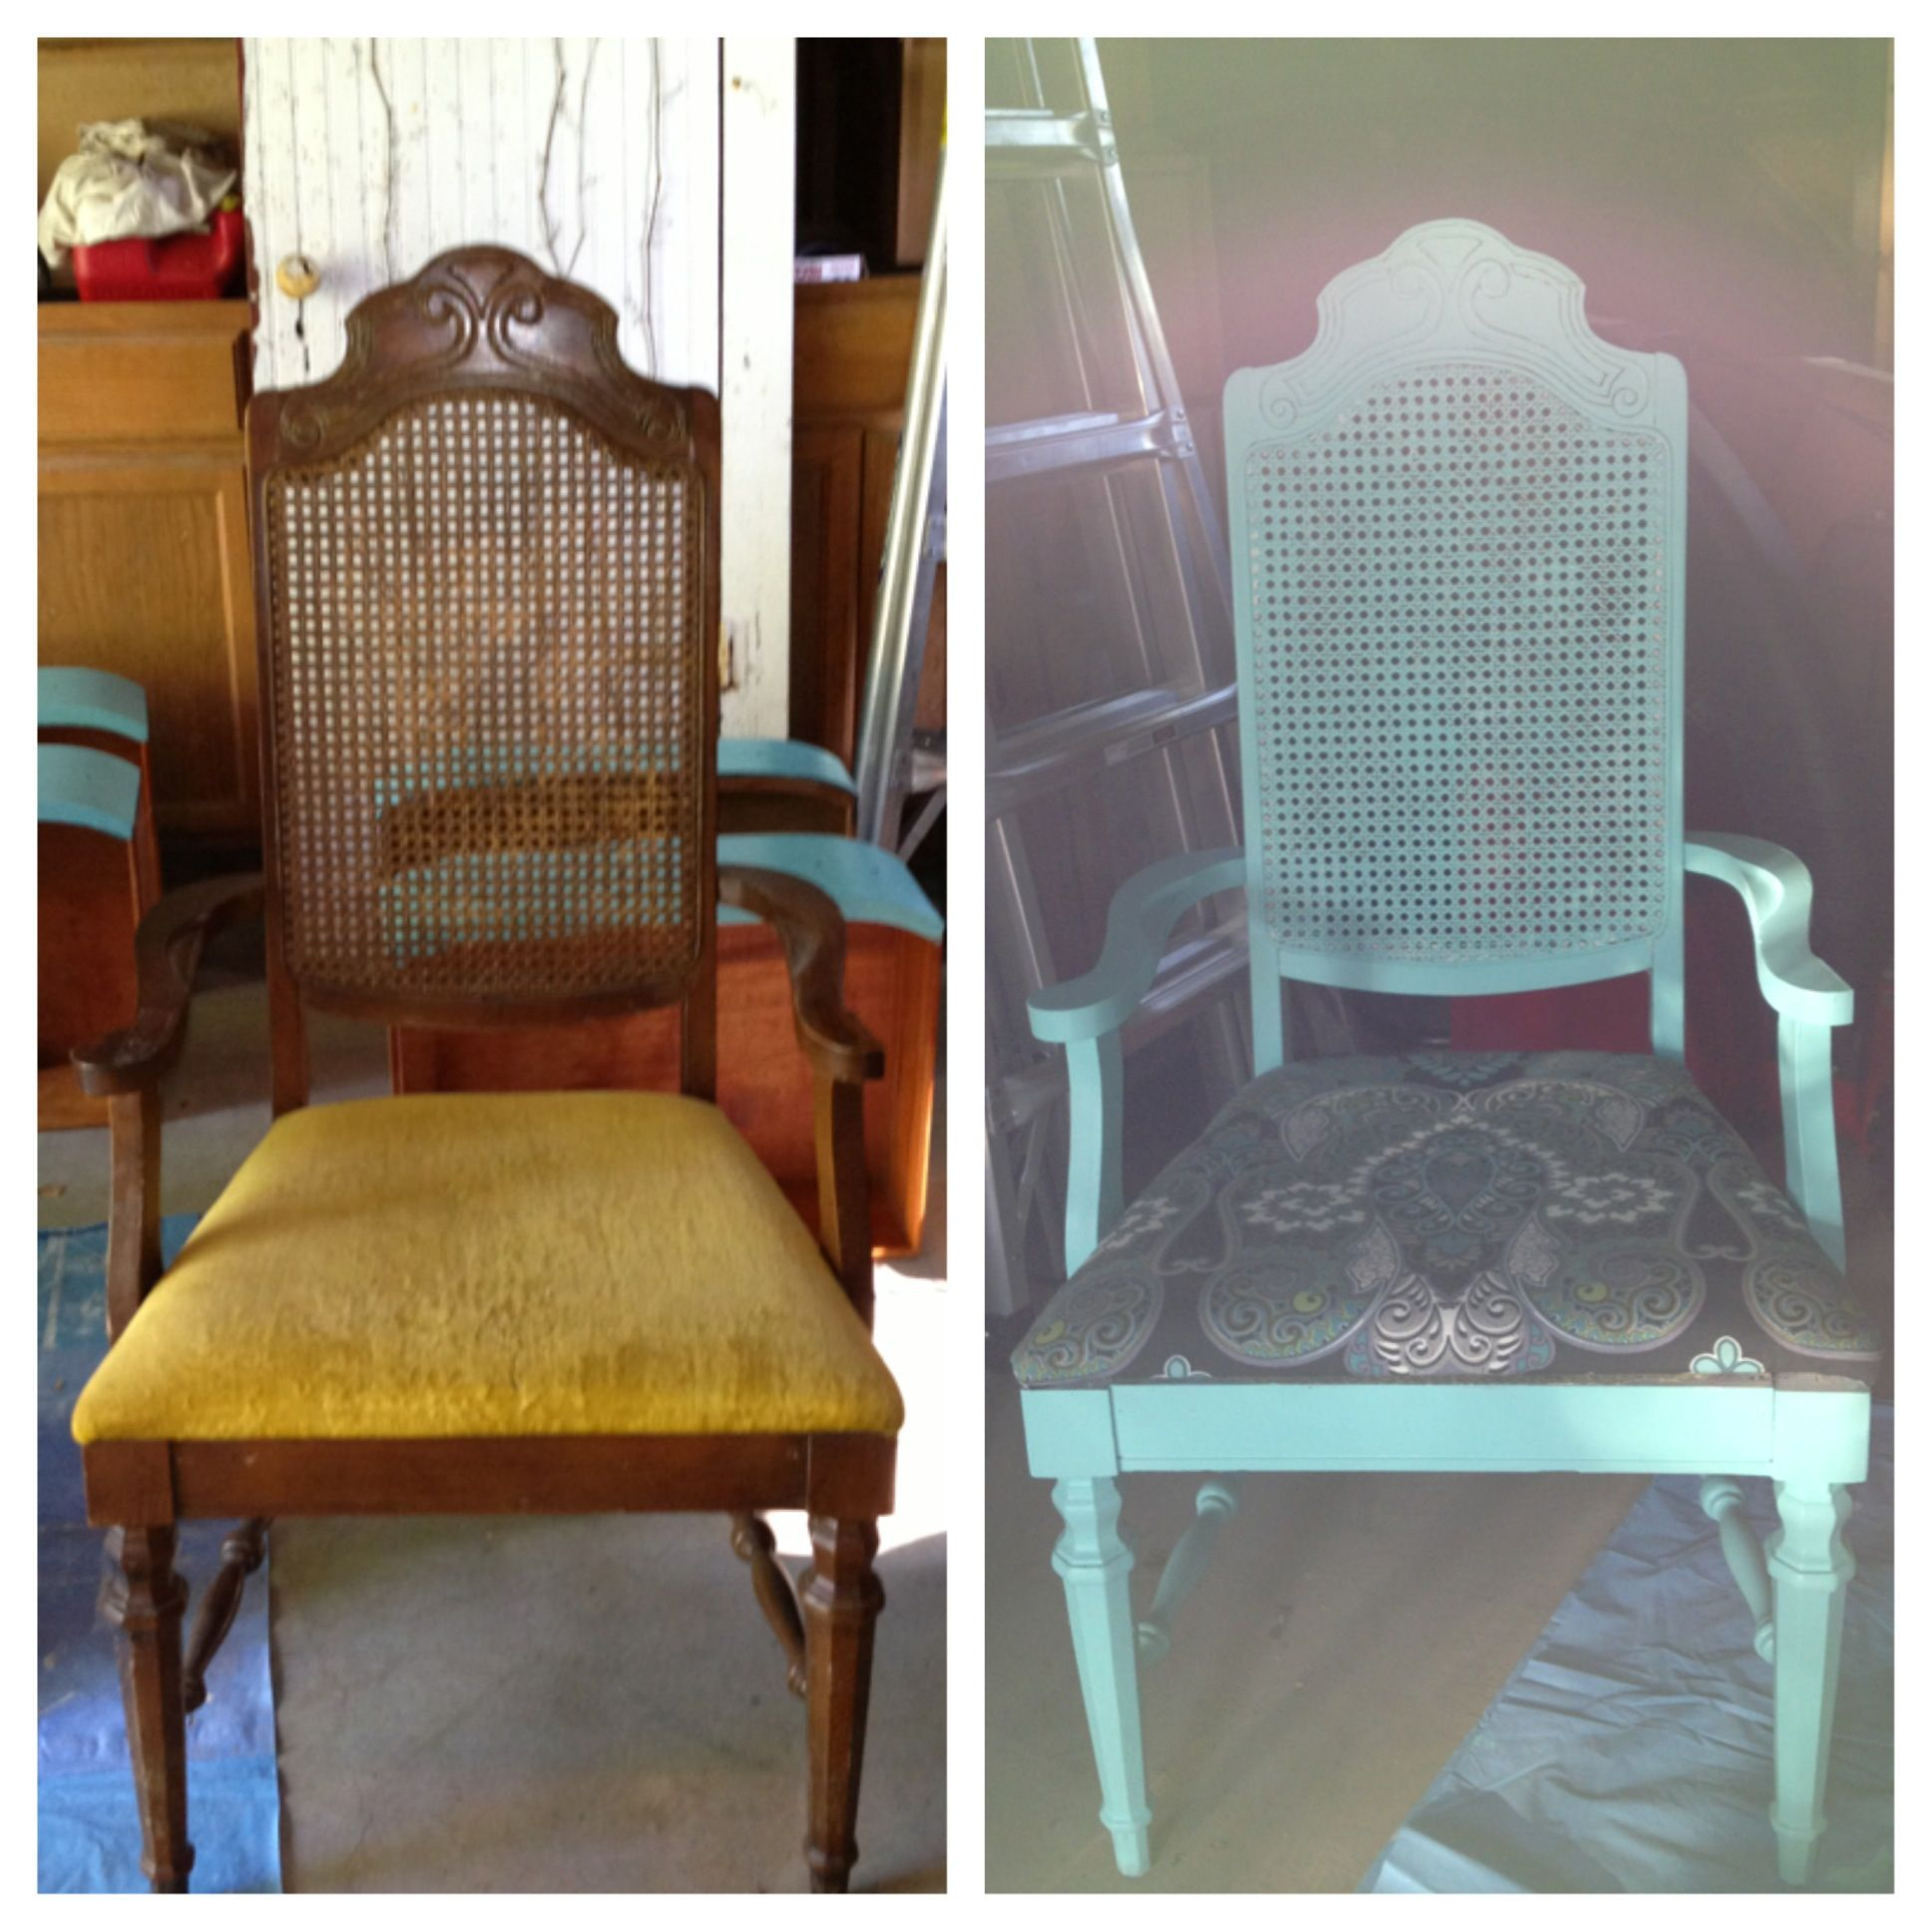 Upcycled Craigslist Chairs Furniture Furniture Makeover Home